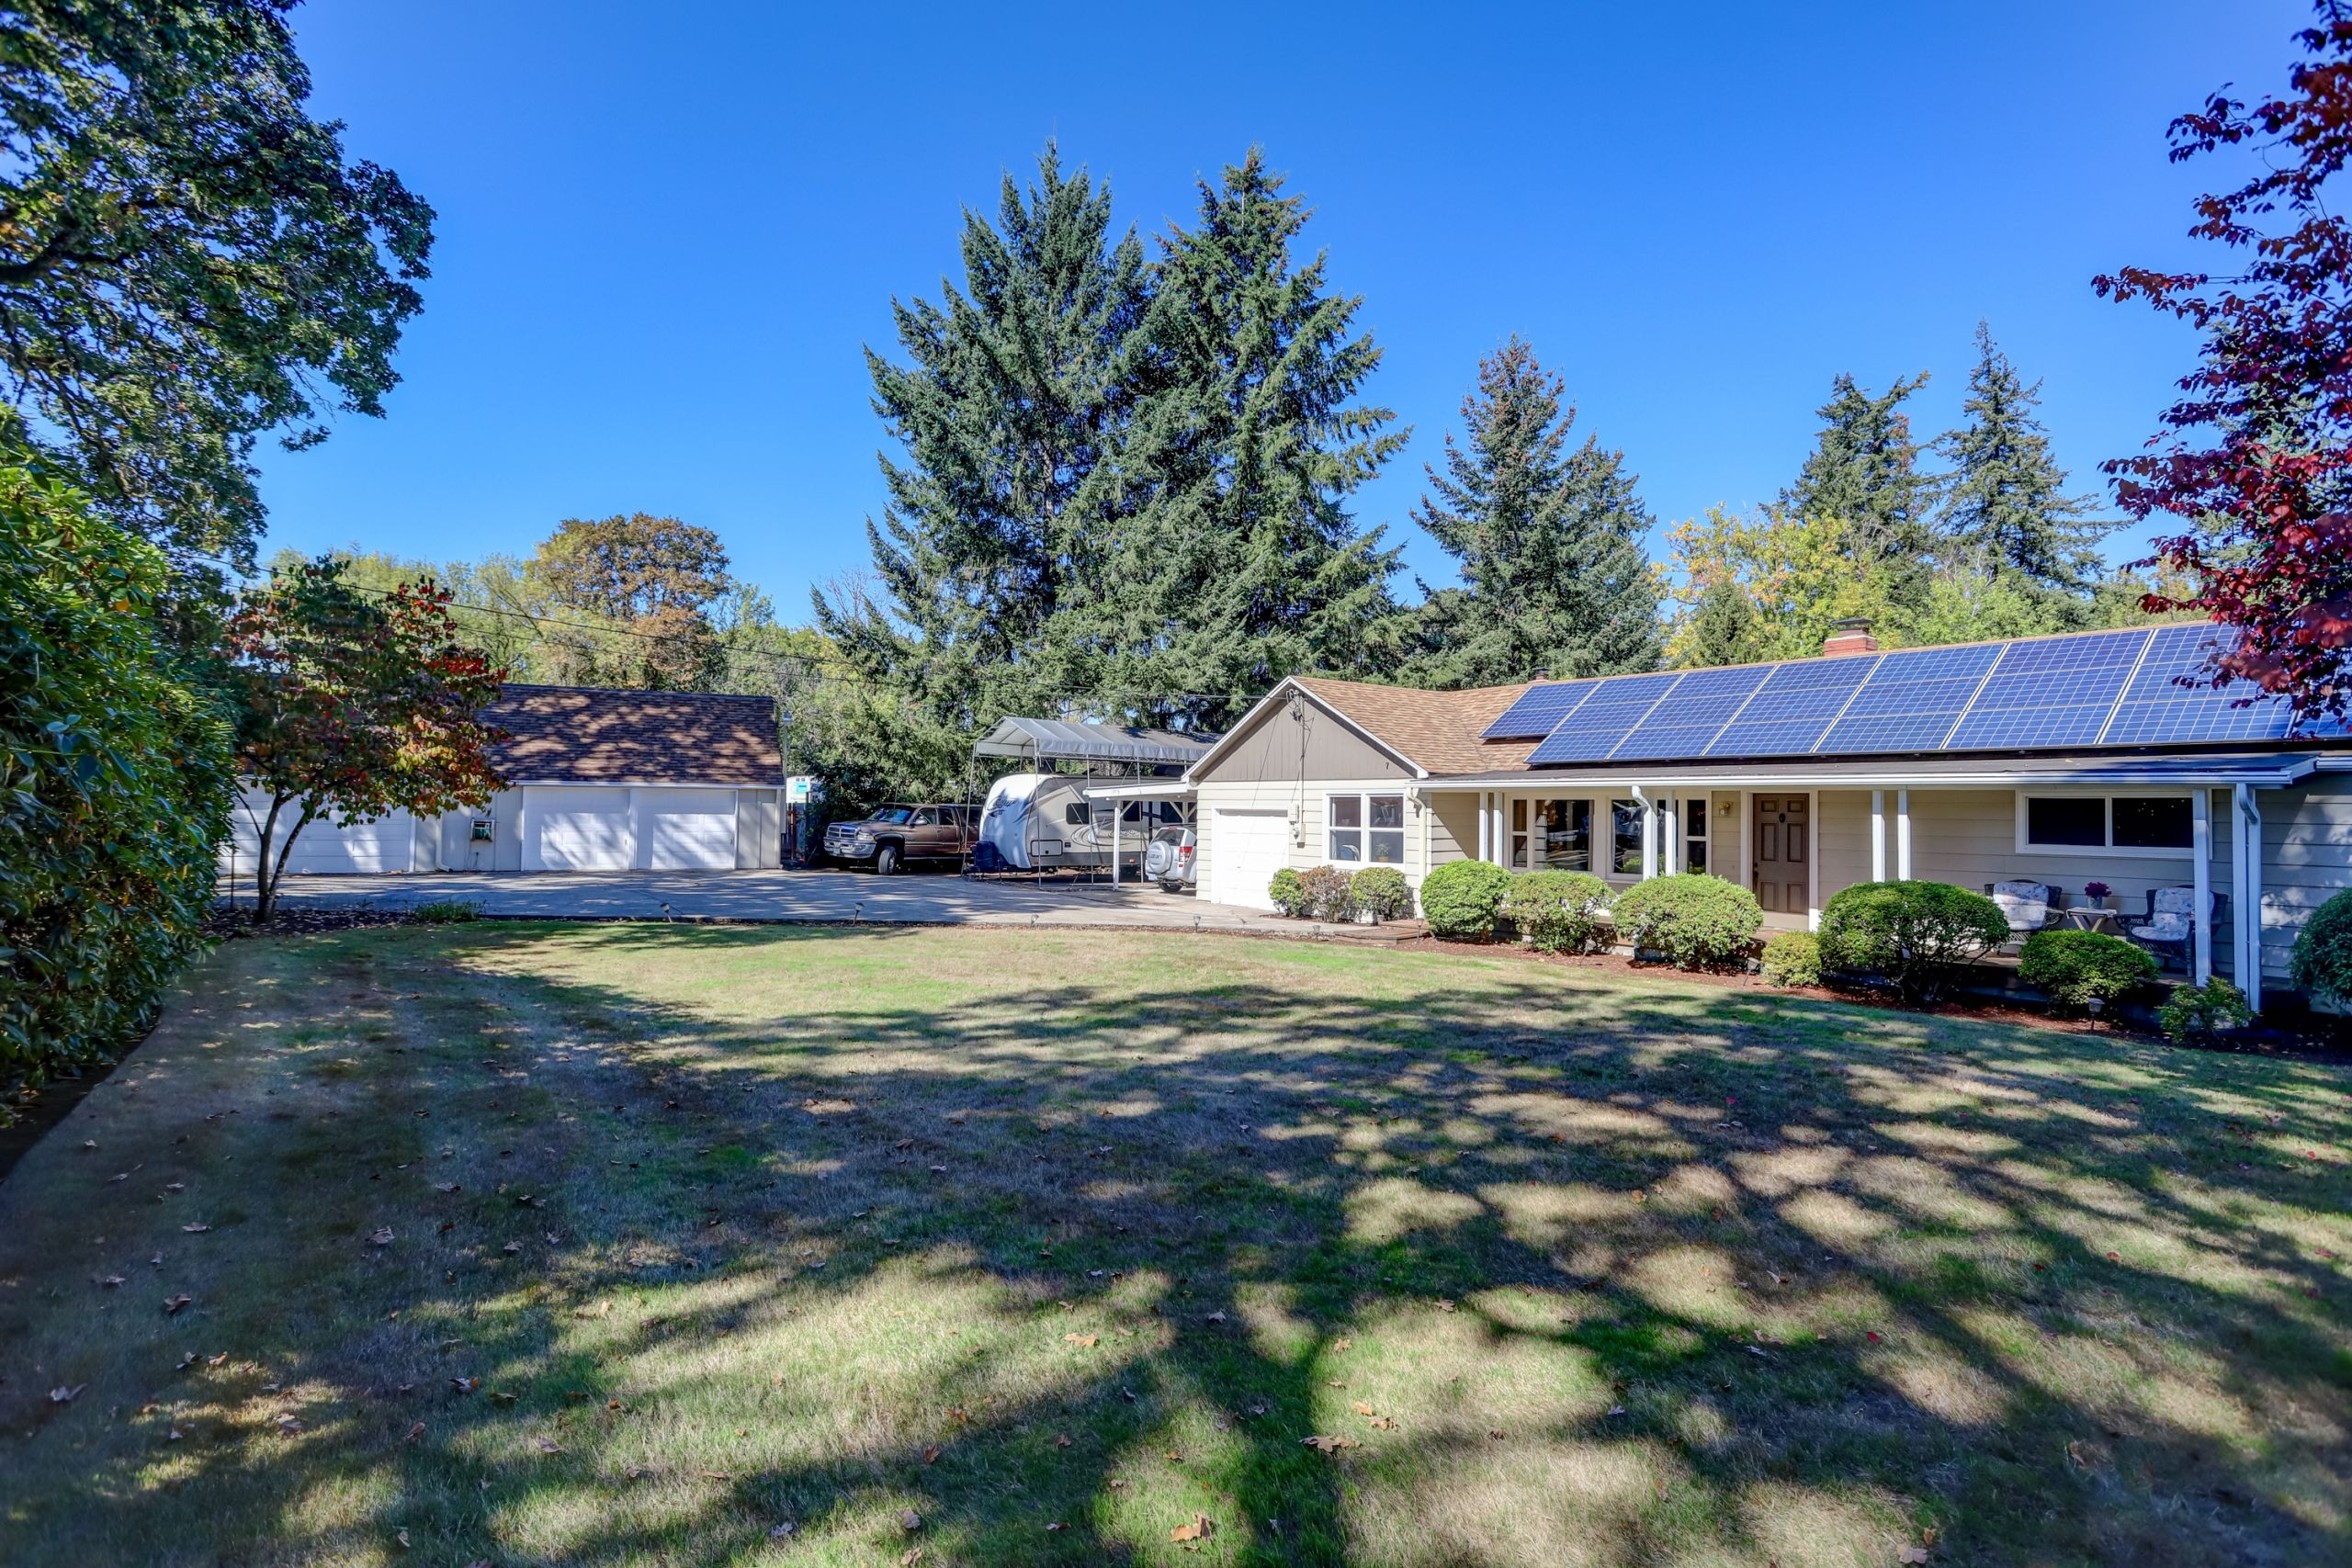 Spectacular Beaverton Home with Potential for Development! Priced at $629,900